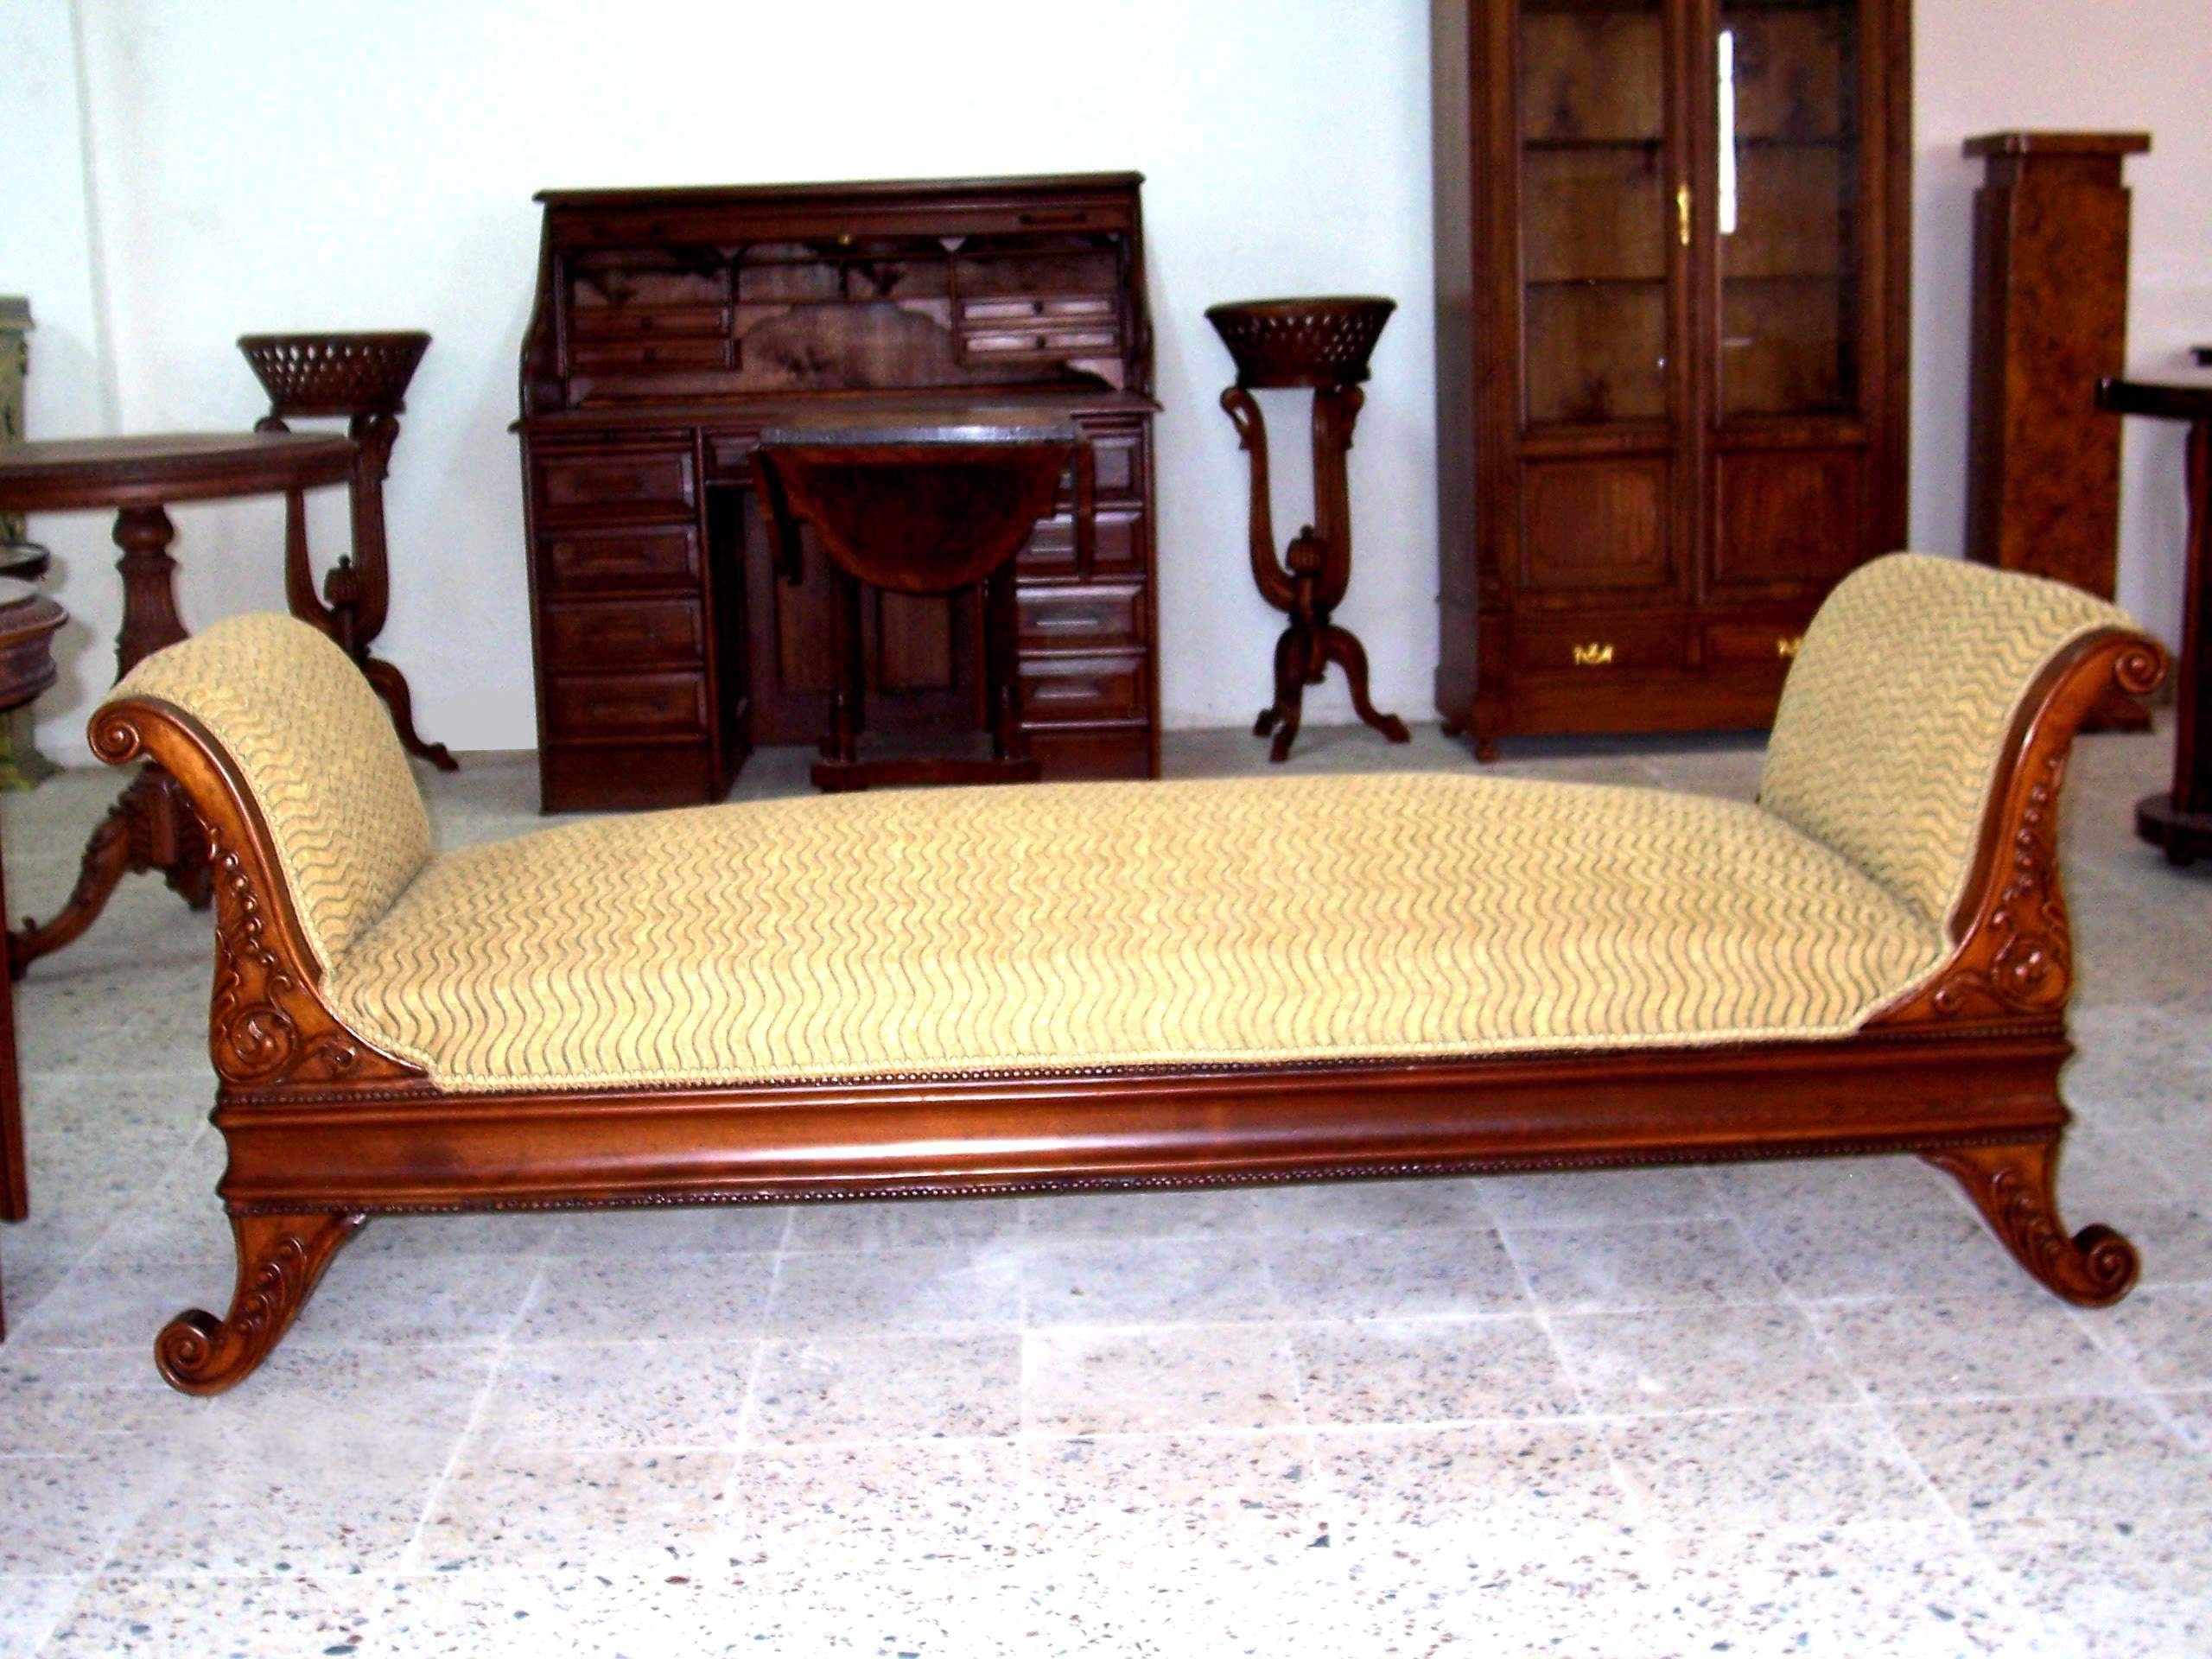 Most Recent Simple Victorian Chaise Lounge – Home Design And Decor Inside Victorian Chaise Lounges (View 6 of 15)